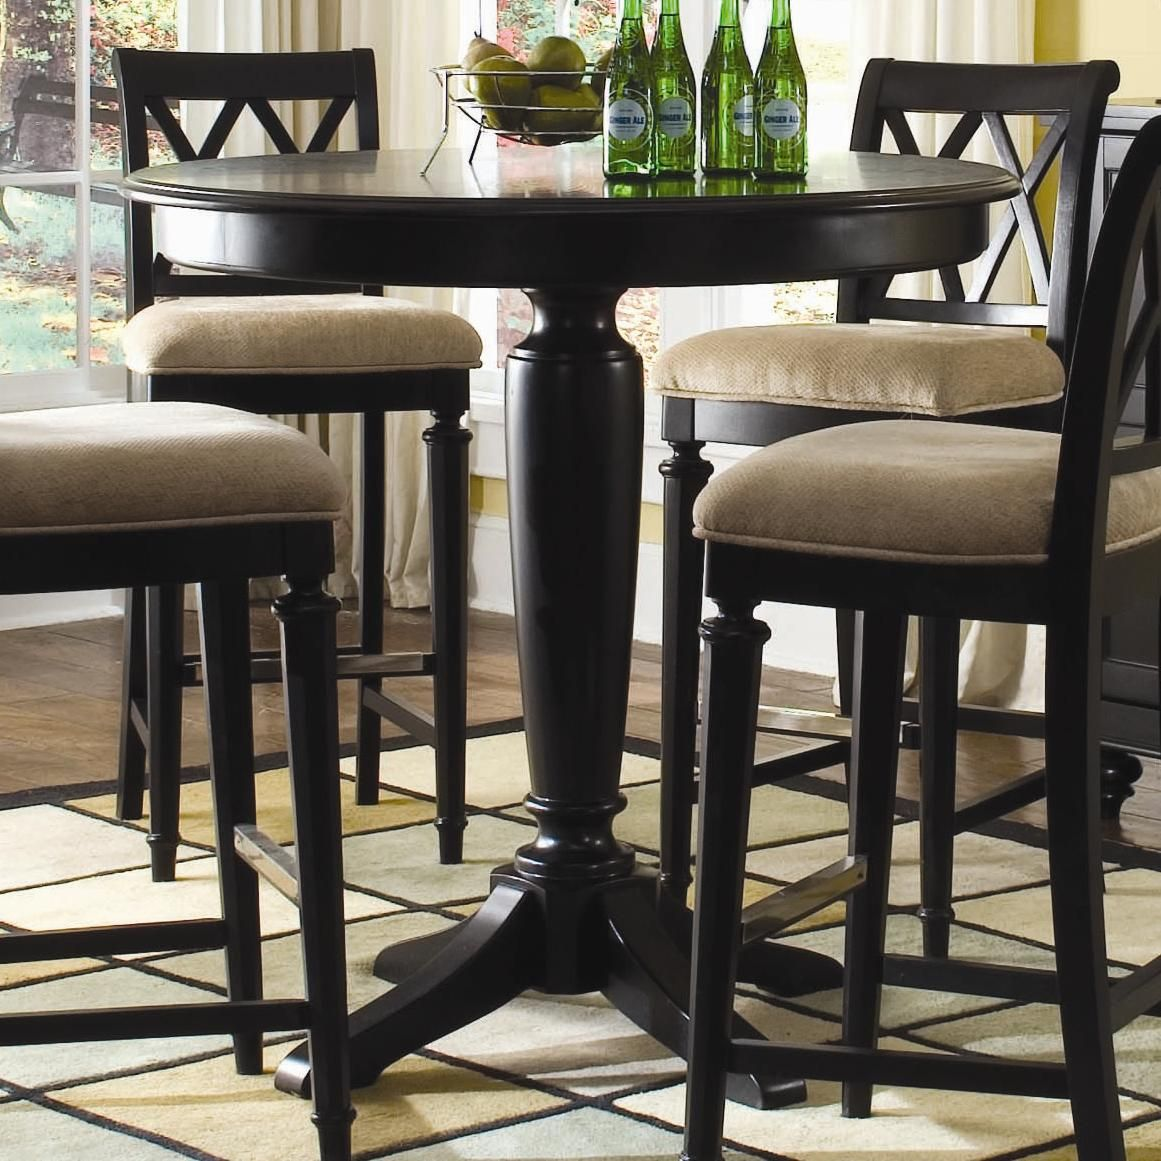 Counter Height Round Table And Chairs Bar Height Kitchen Table